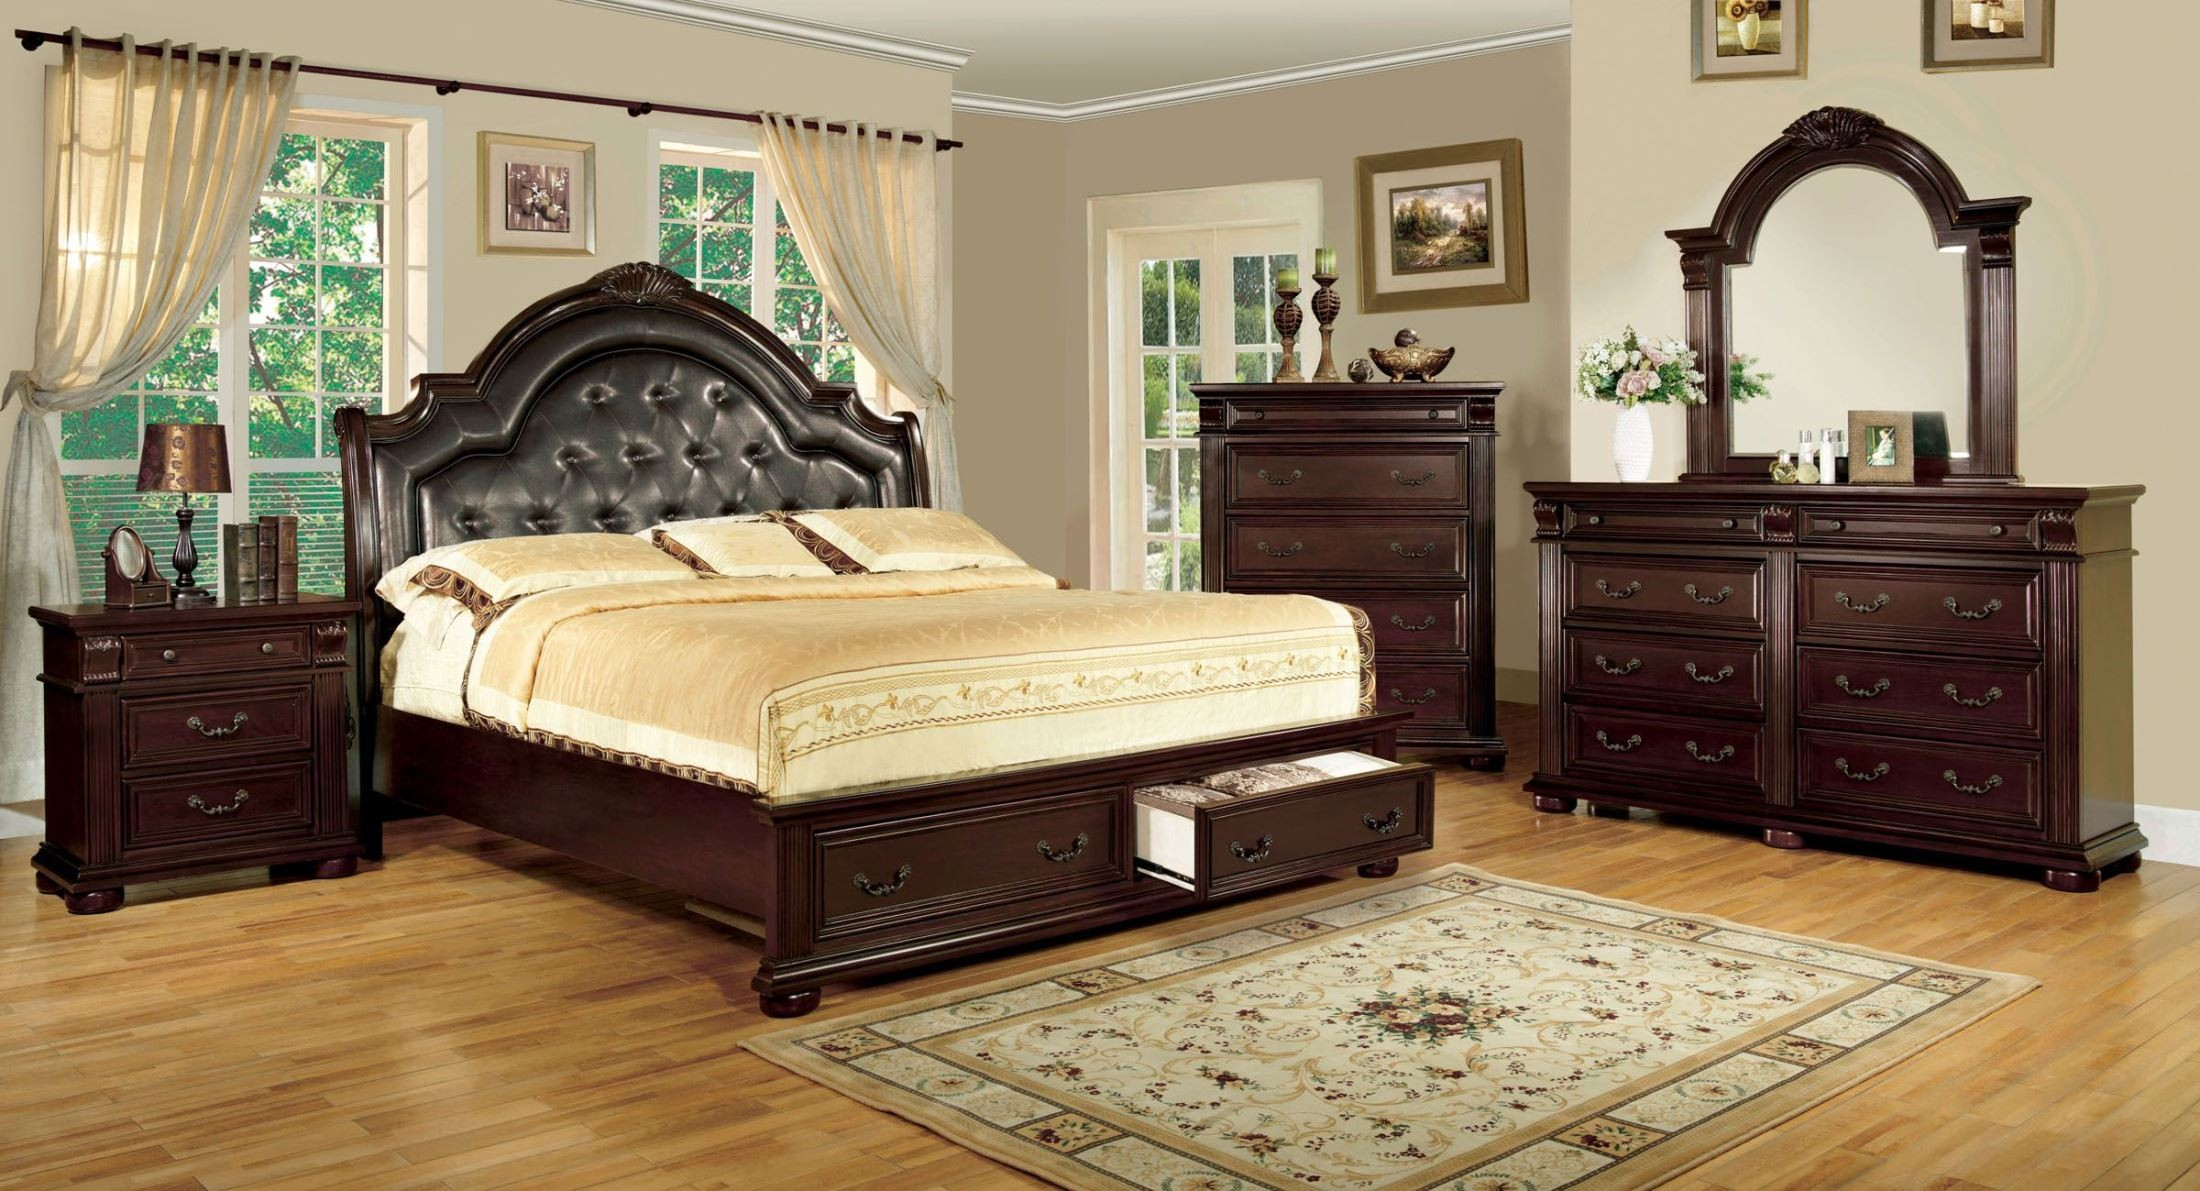 Scottsdale Brown Cherry Queen Storage Bed From Furniture